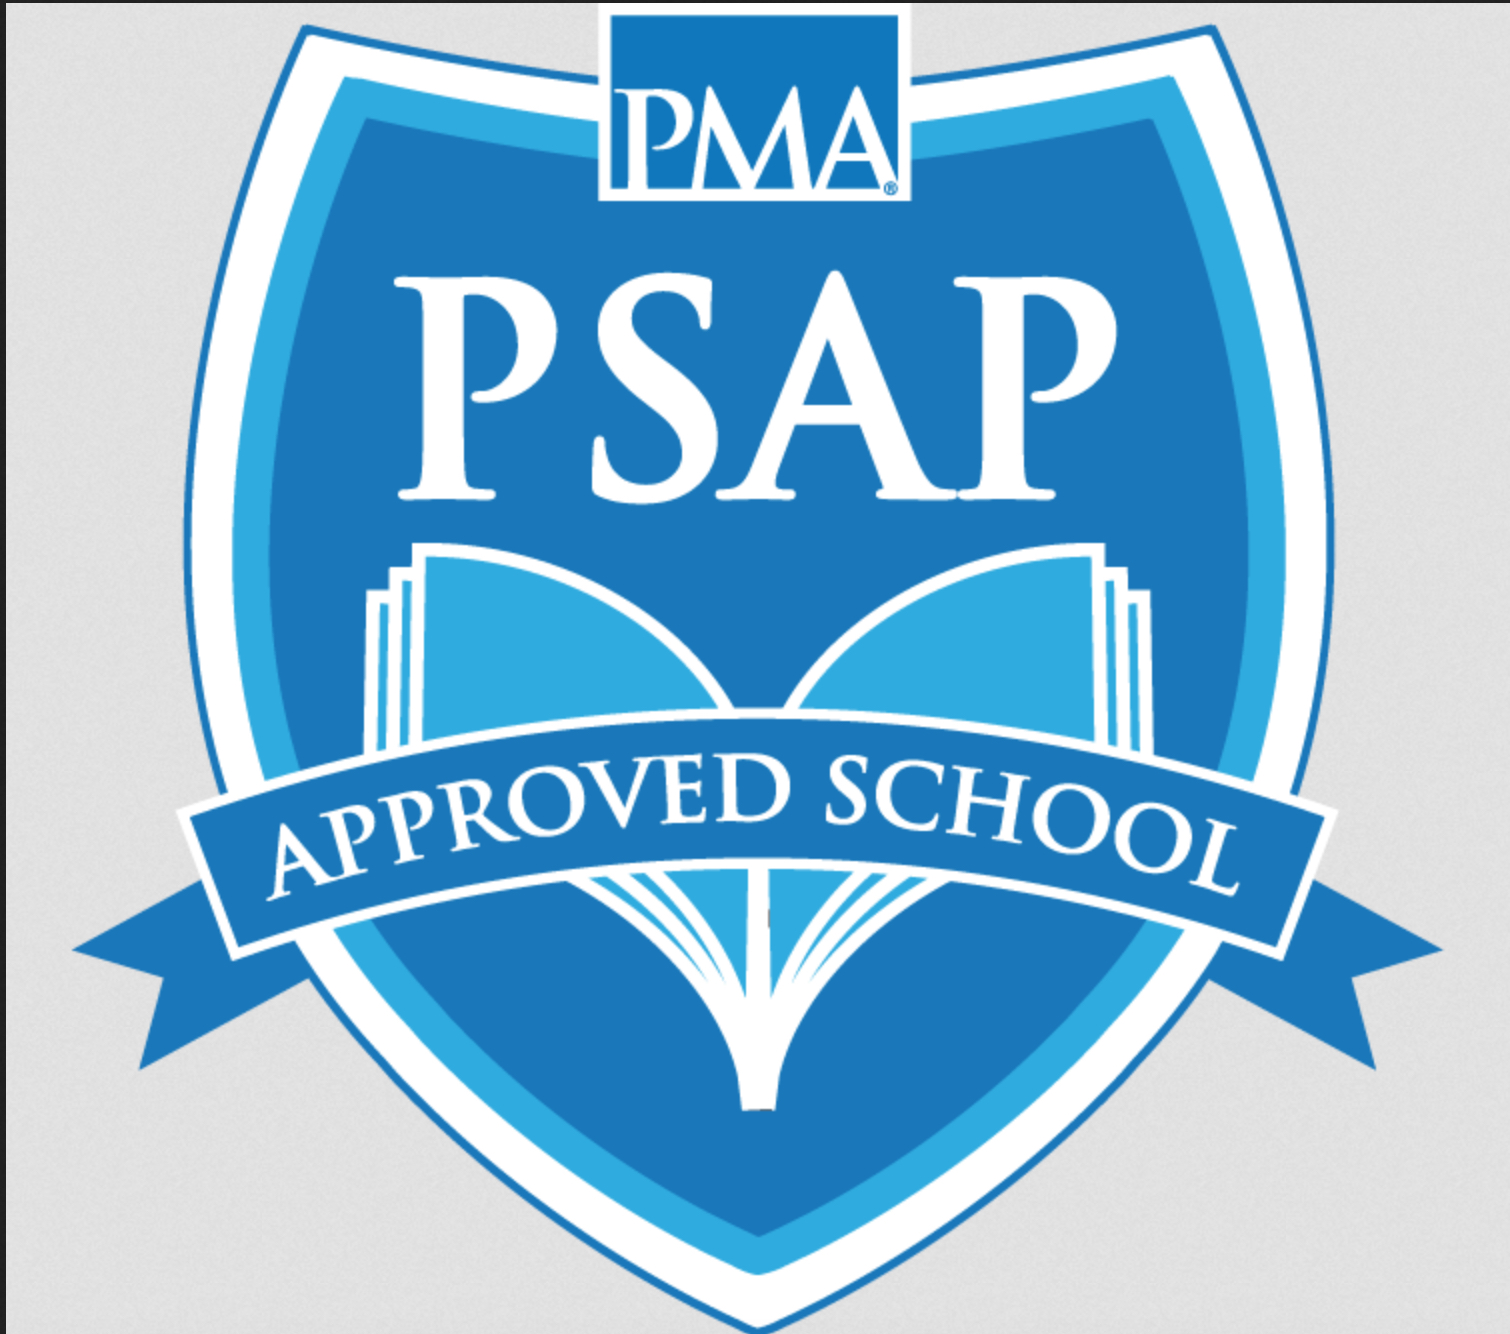 We are proud to be a PSAP Approved School - The purpose of the Pilates School Approval Program (PSAP) is to provide a systematic approach by which Pilates schools can demonstrate their compliance with accepted standards, pursue continuous improvement, and be recognized for doing so.